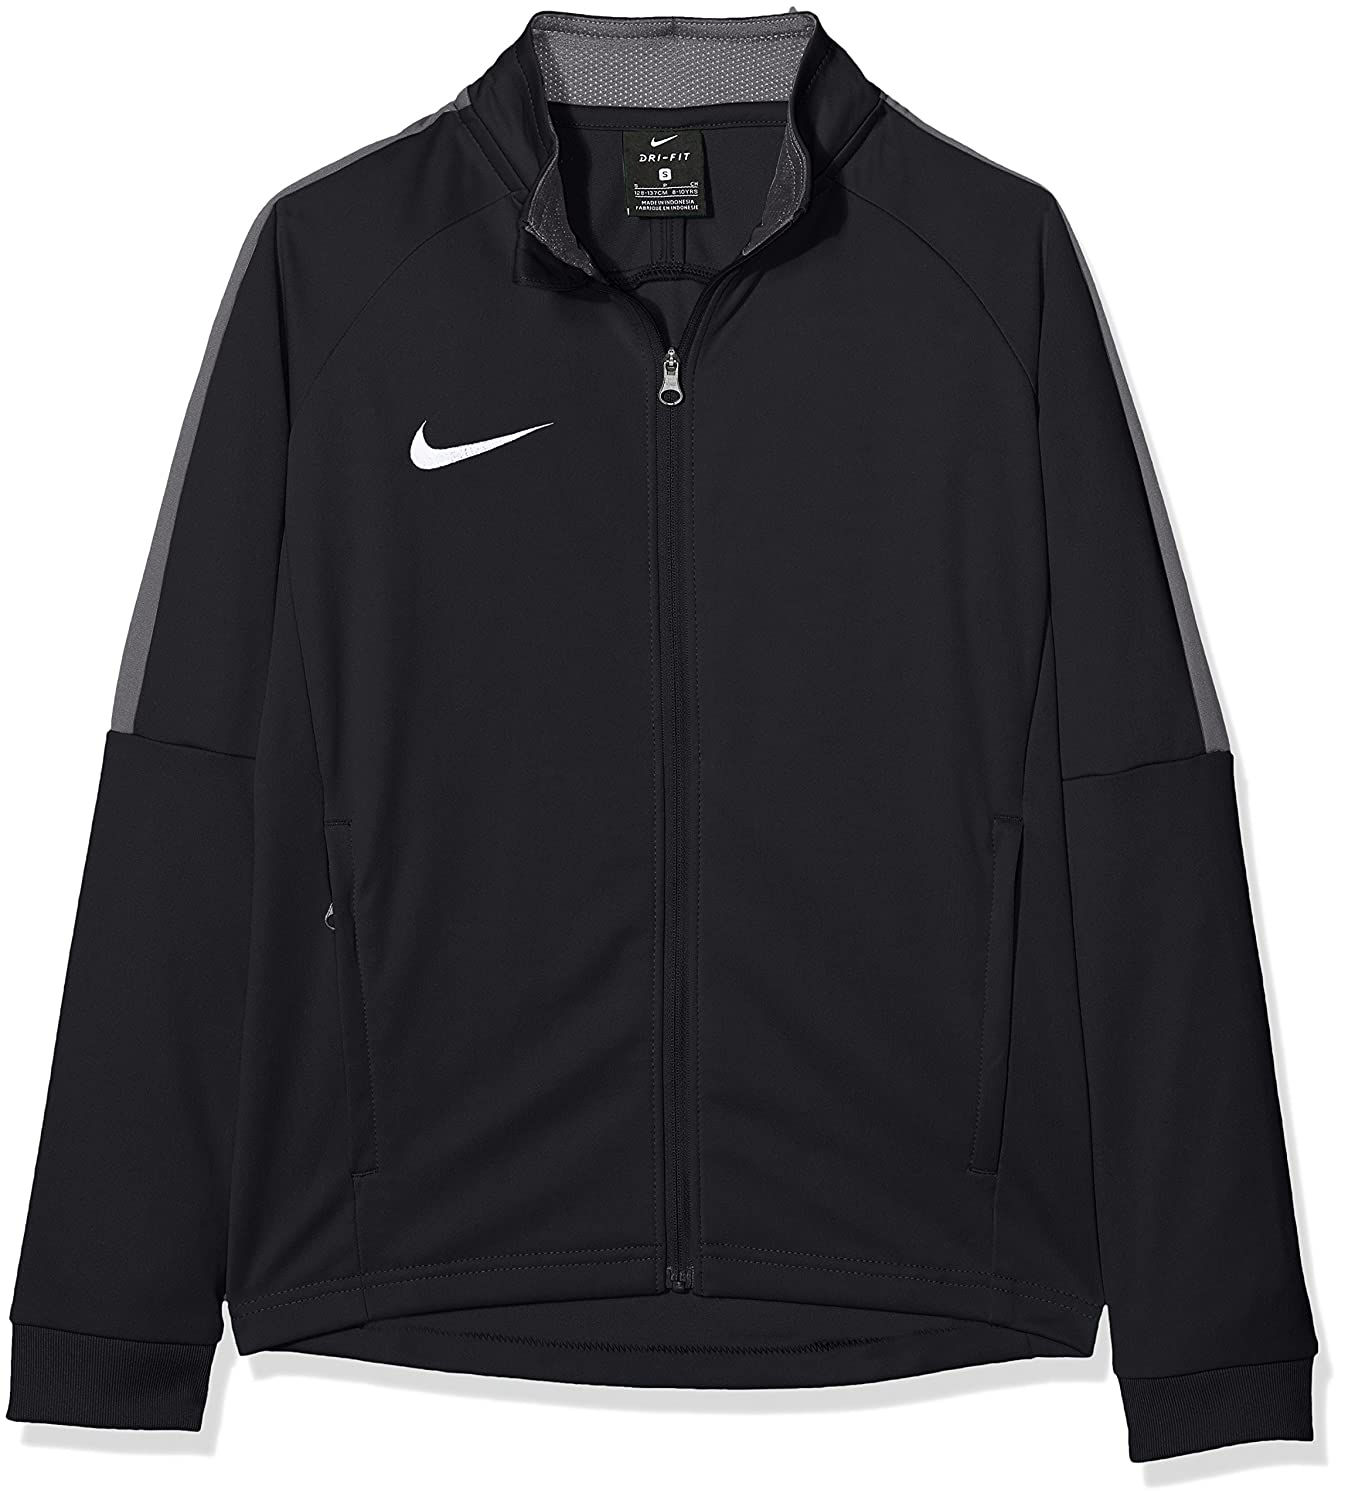 NIKE Youth Dry Academy 18 Track Jacket (Black) Size Youth Small 893751-010